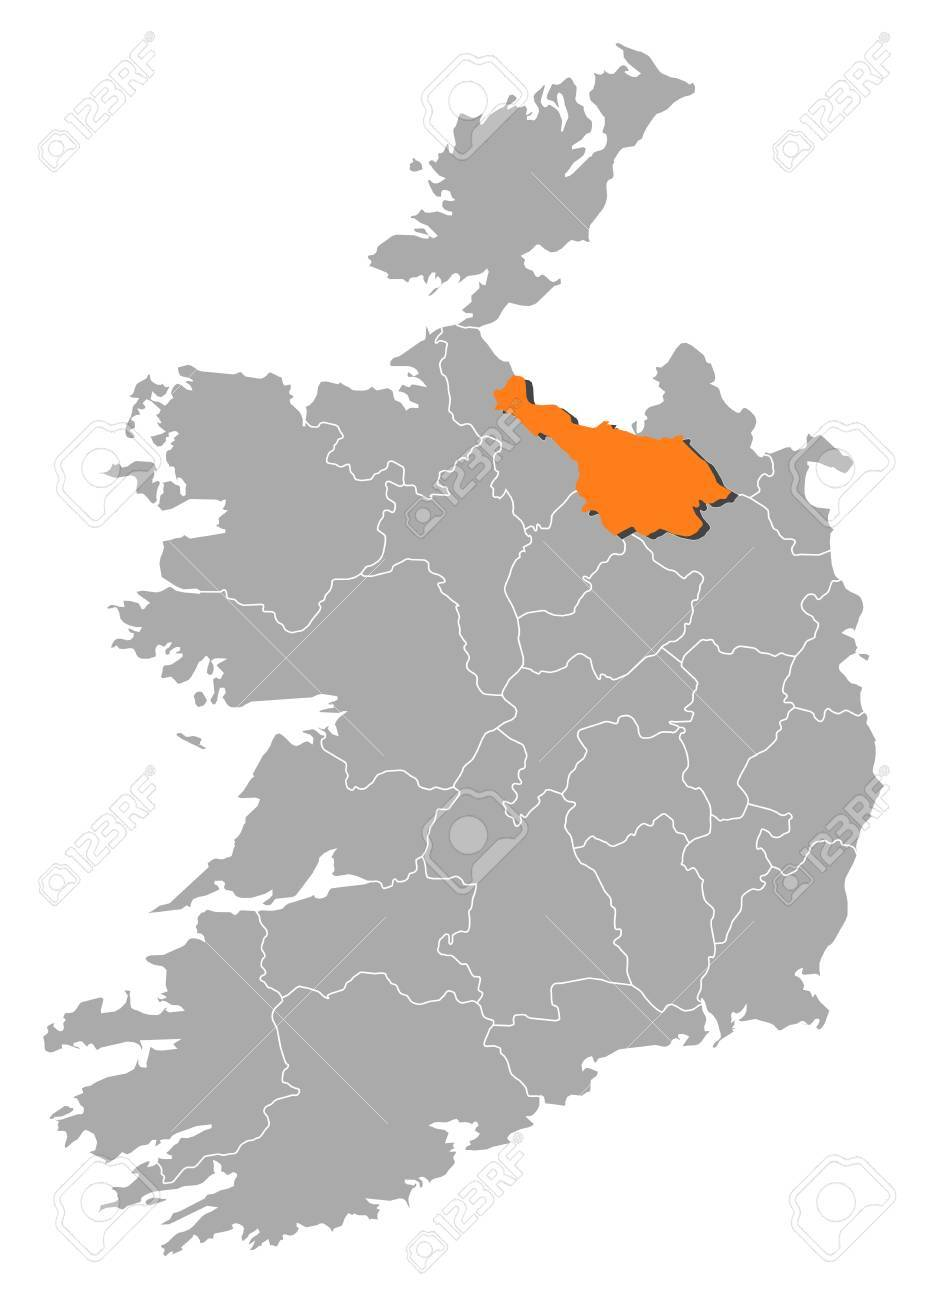 Map Of Ireland Cavan.Map Of Ireland With The Provinces Cavan Is Highlighted By Orange